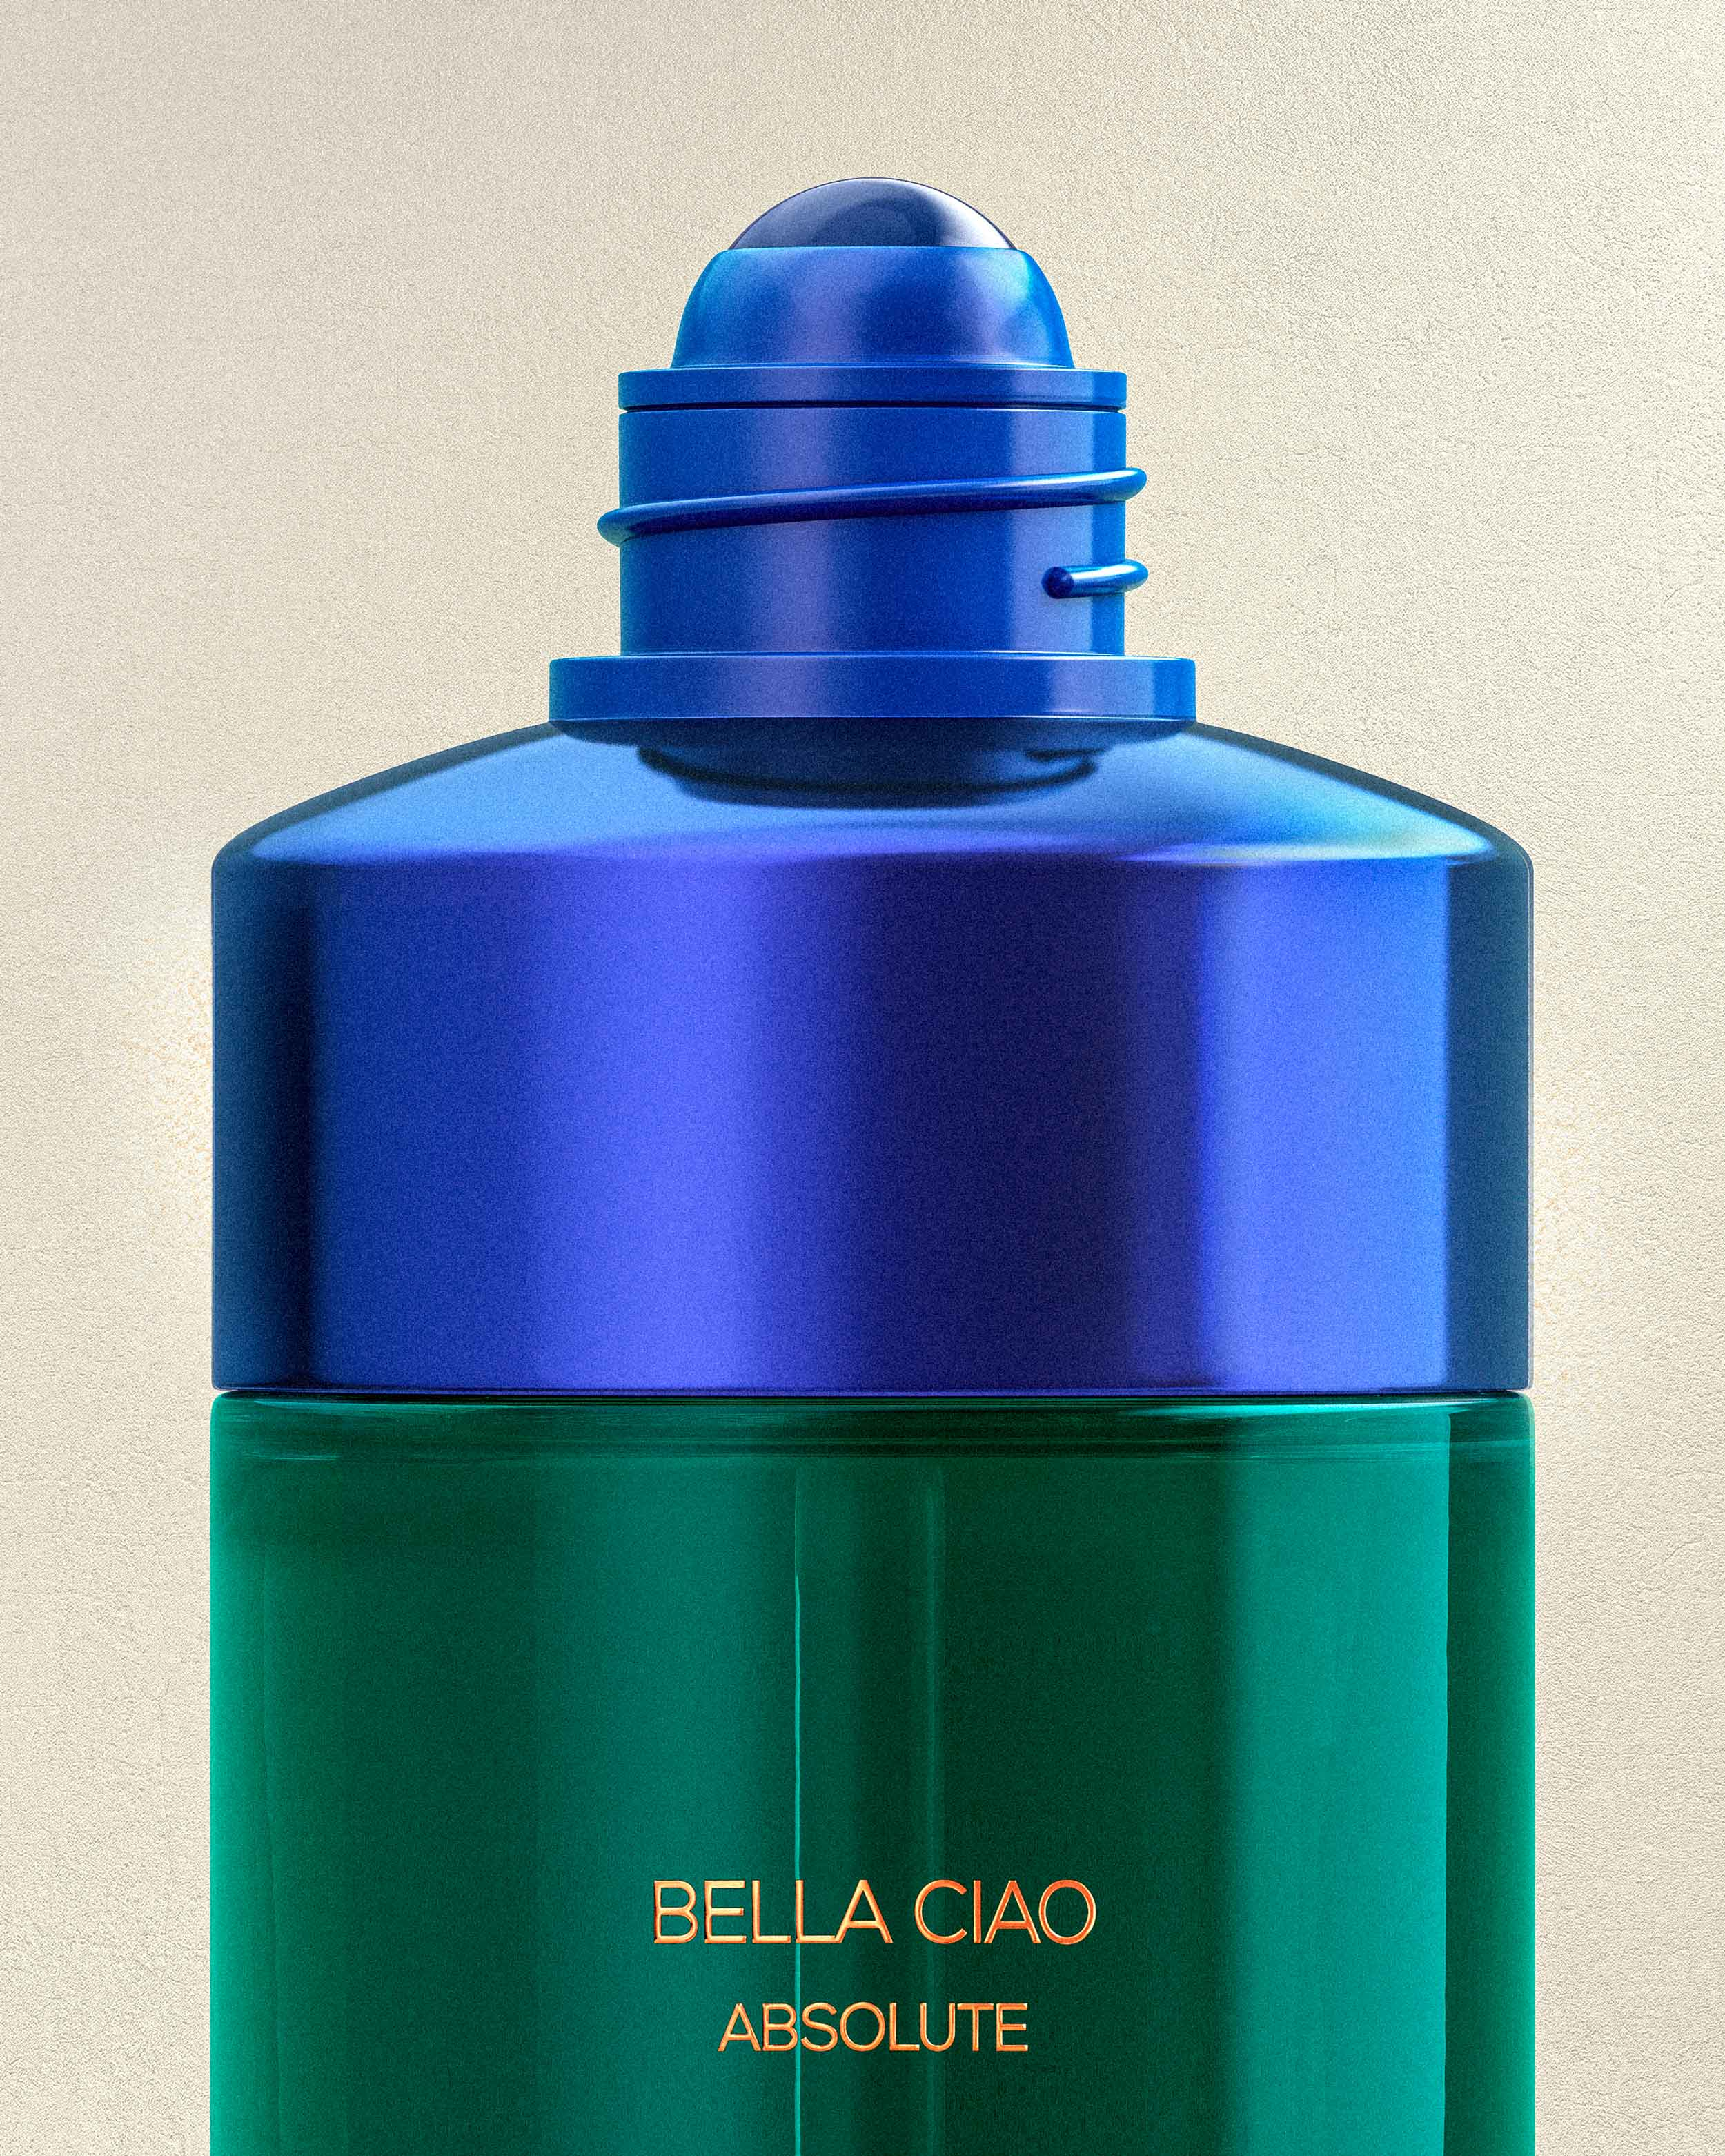 OJAR Absolute Bella Ciao Perfume Roll-on